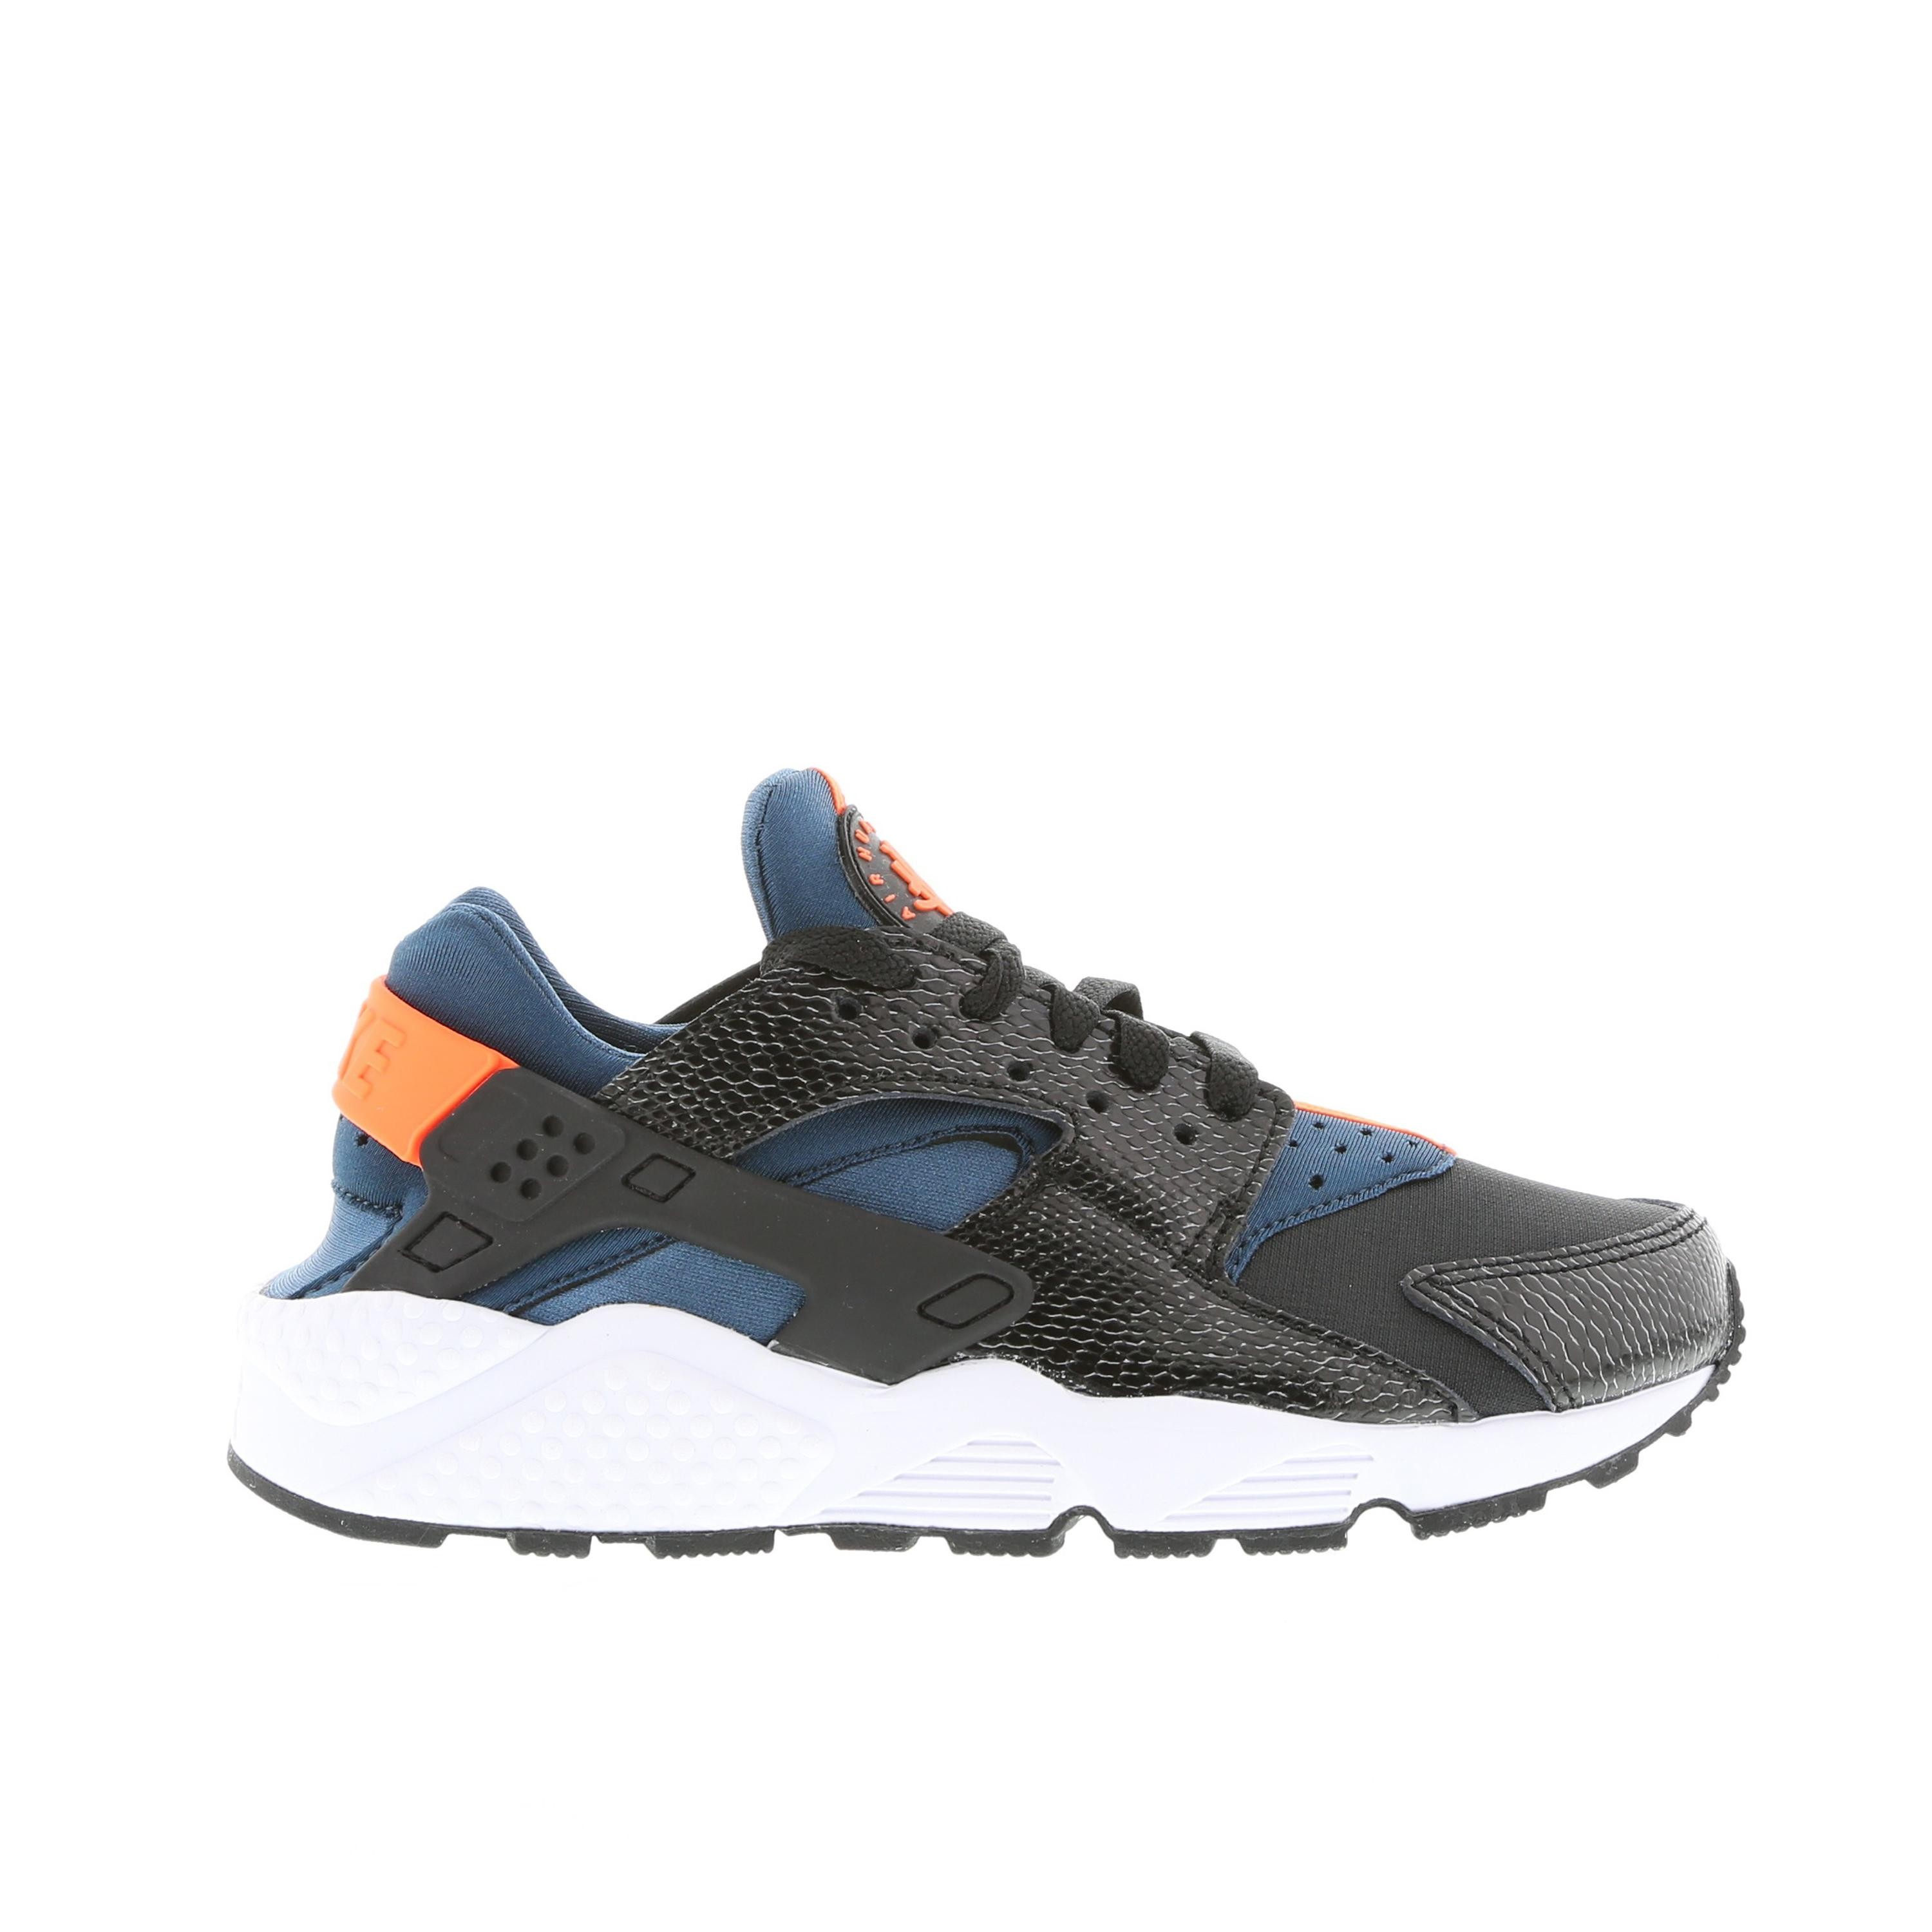 Nike WMNS Air Huarache 634835-084 Black/Hyper Crimson/Space Blue Womens Shoe